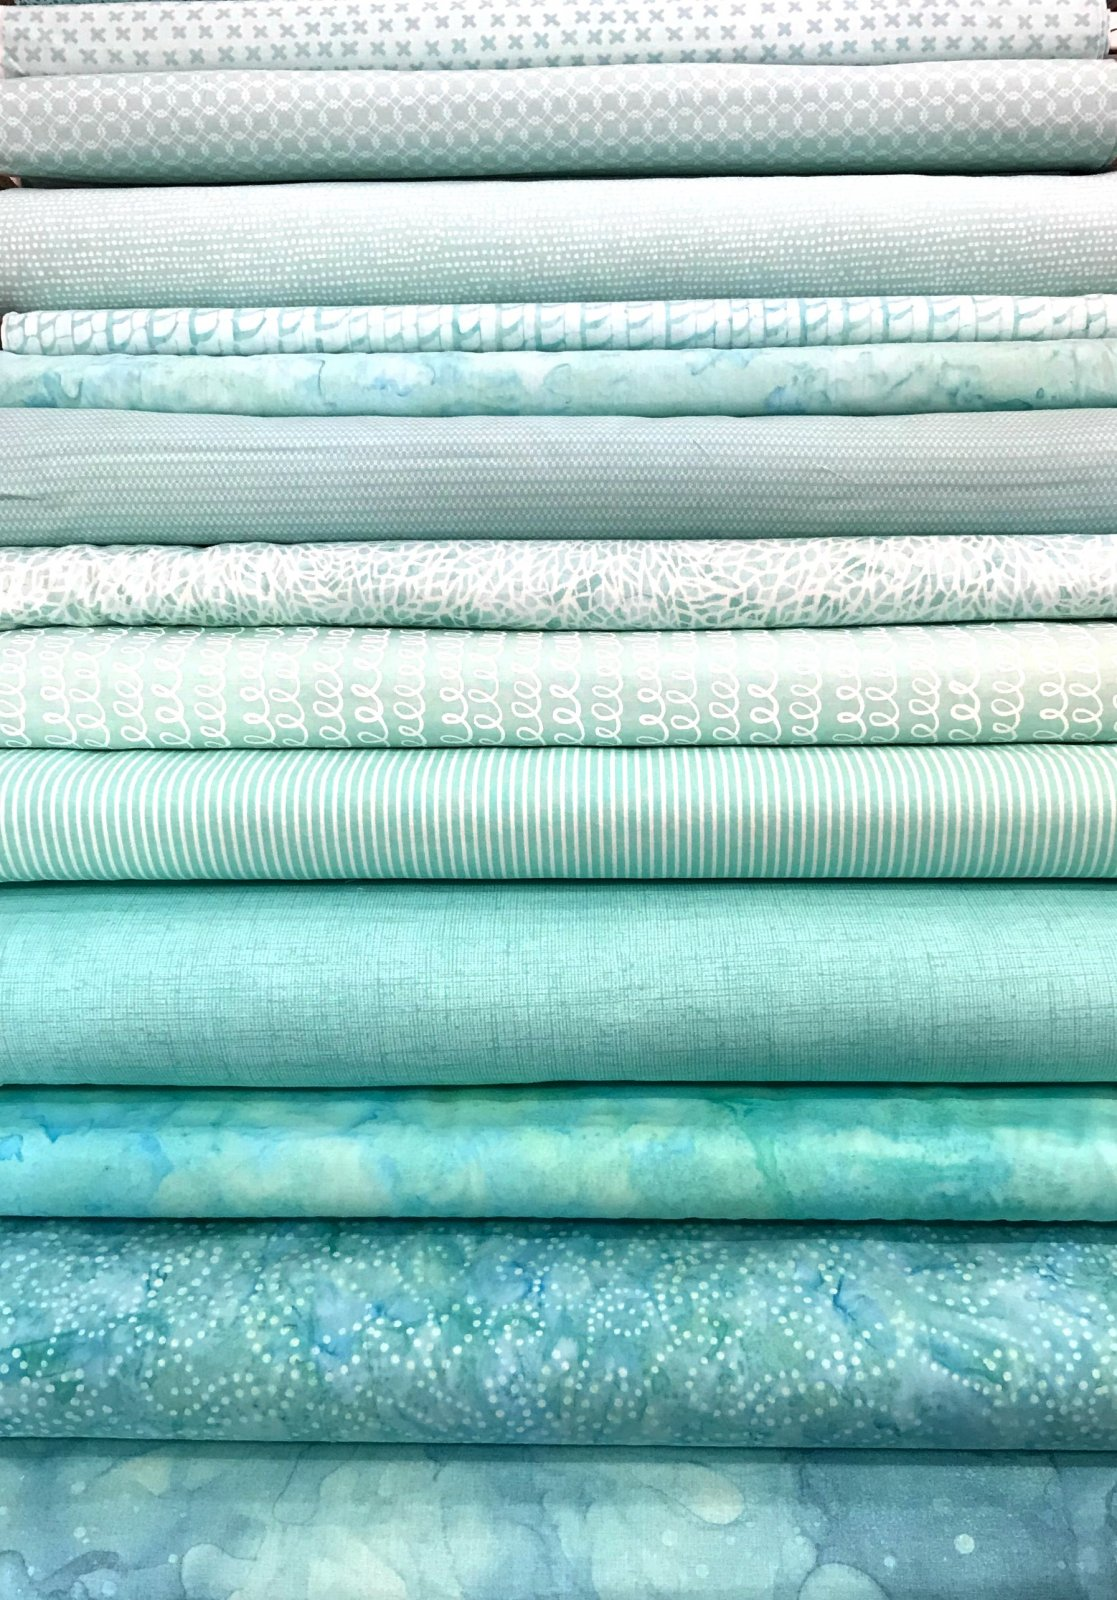 Seaside Serenity - 17 Fat Quarters